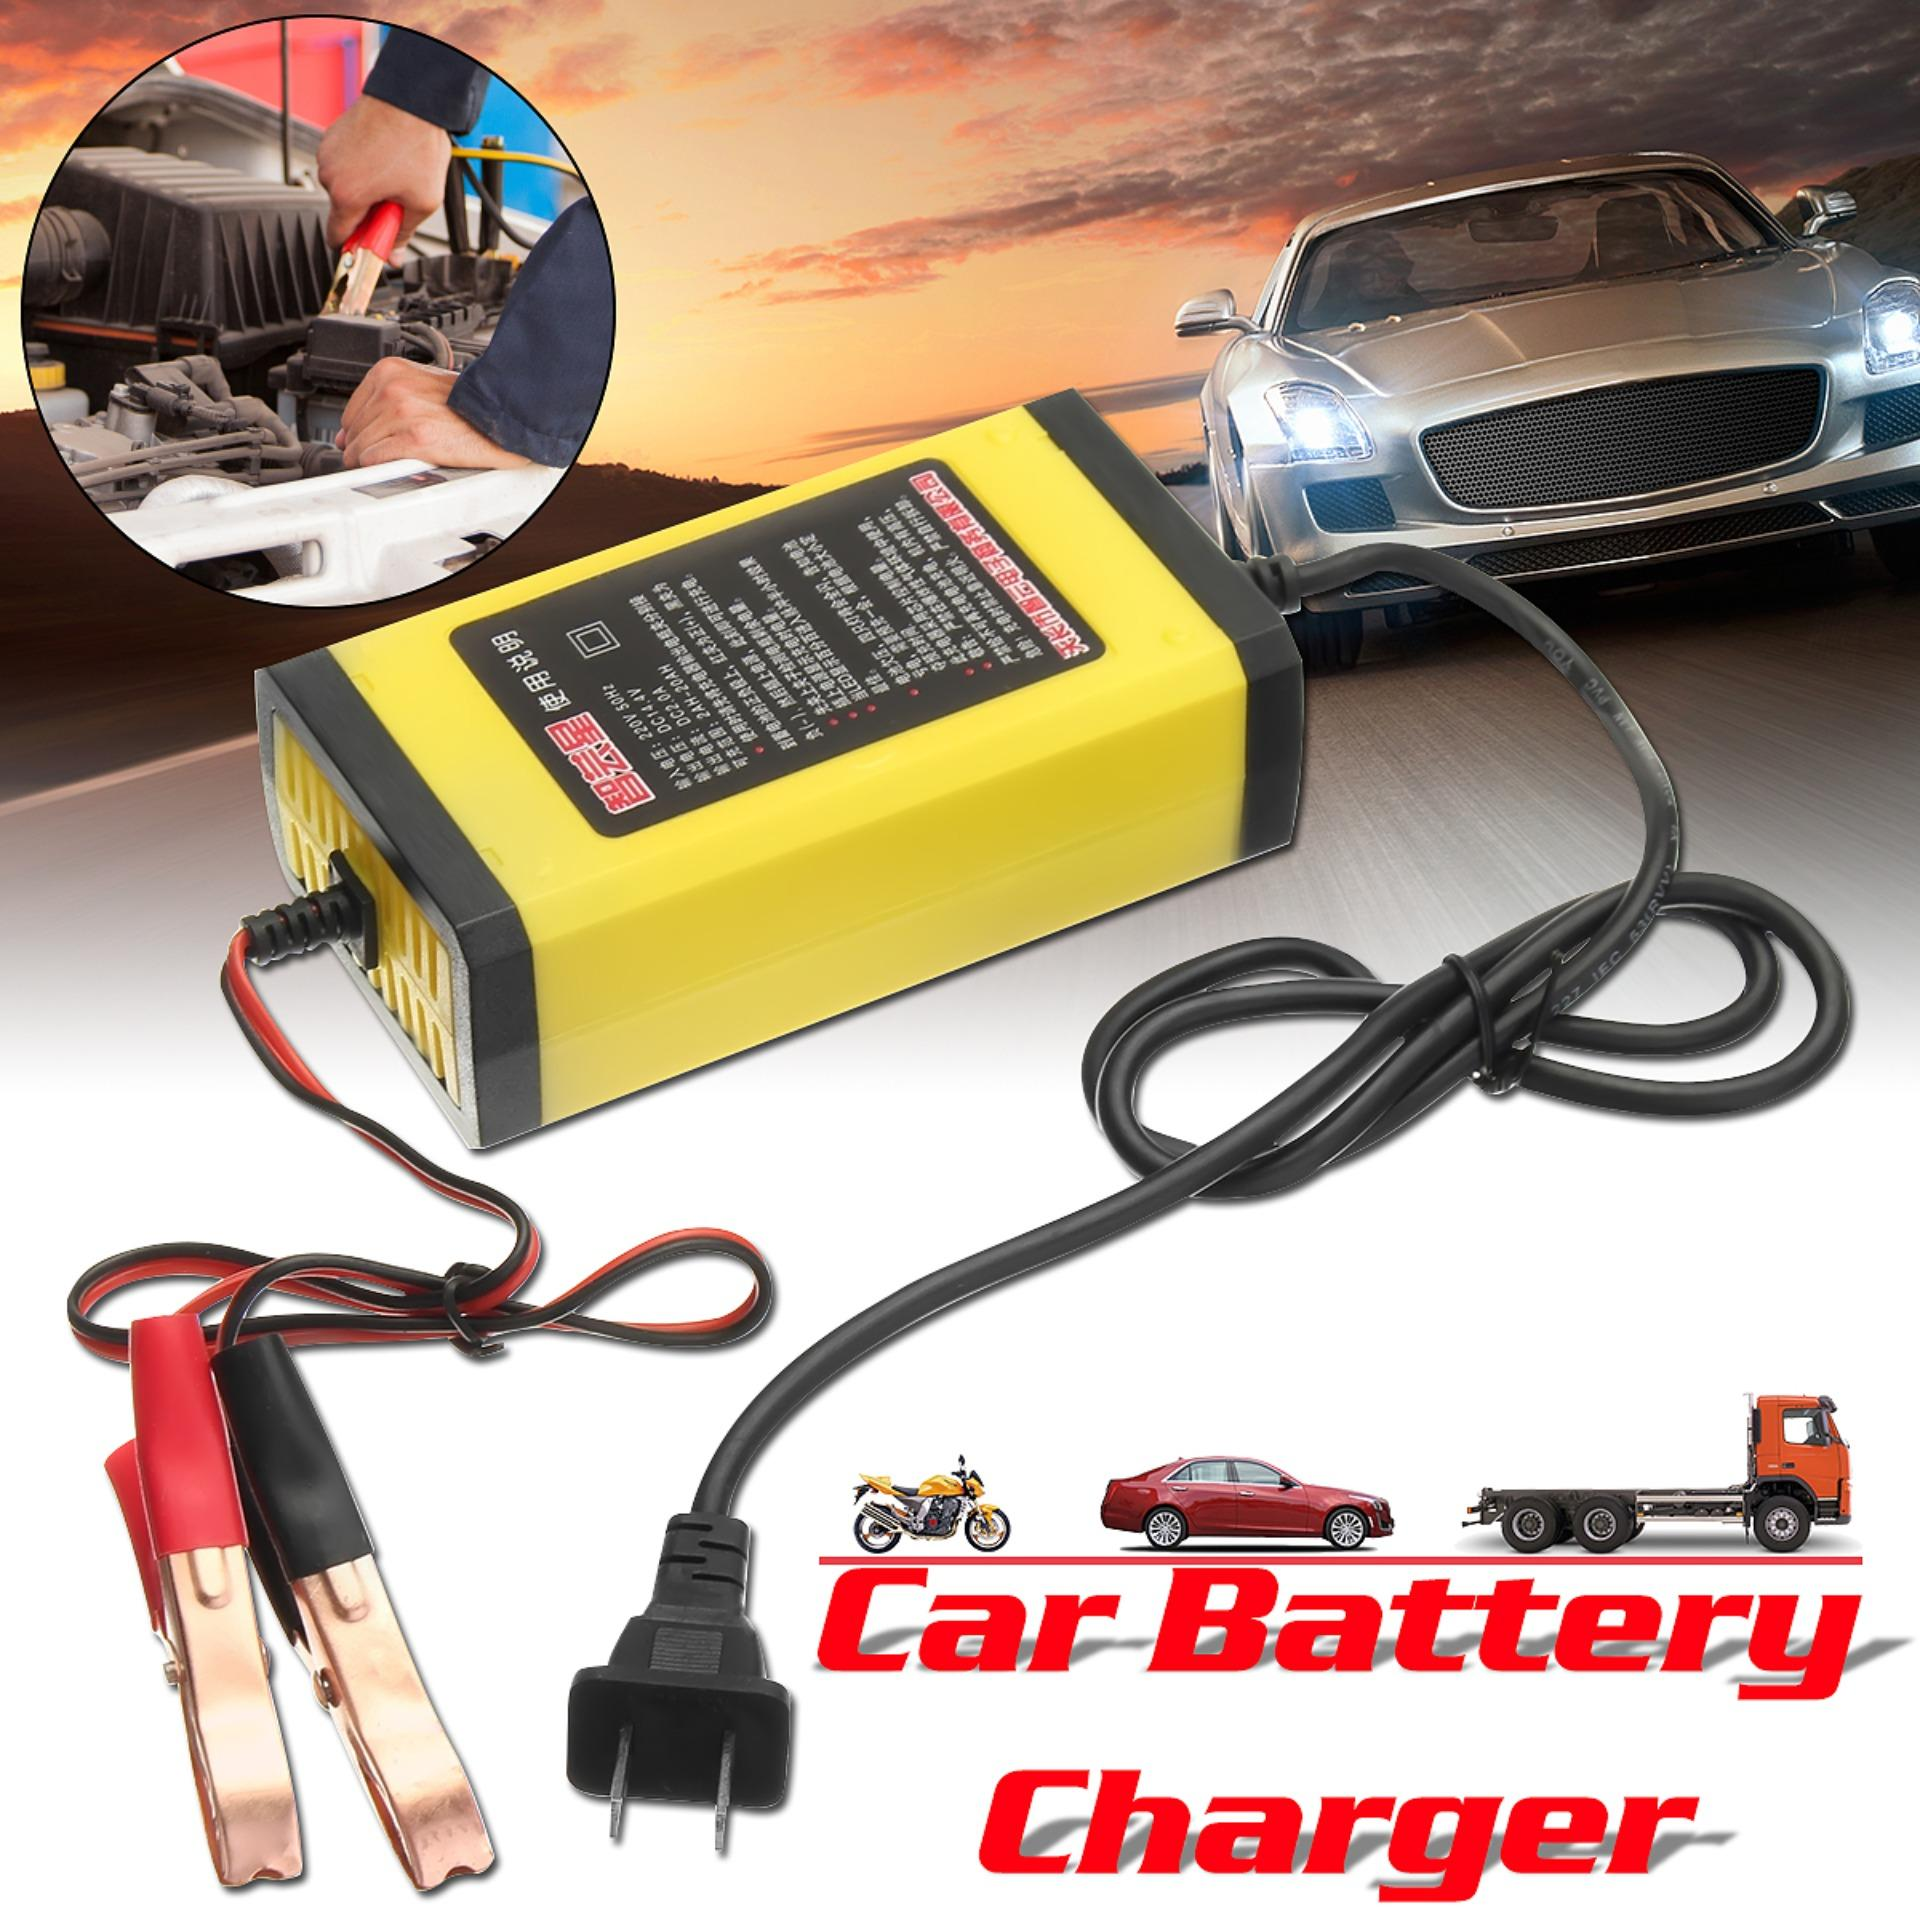 【free Shipping + Super Deal + Limited Offer】abs 12v 2ah-20ah Car Motorcycle Smart Automatic Battery Charger Maintainer - Intl By Teamtop.